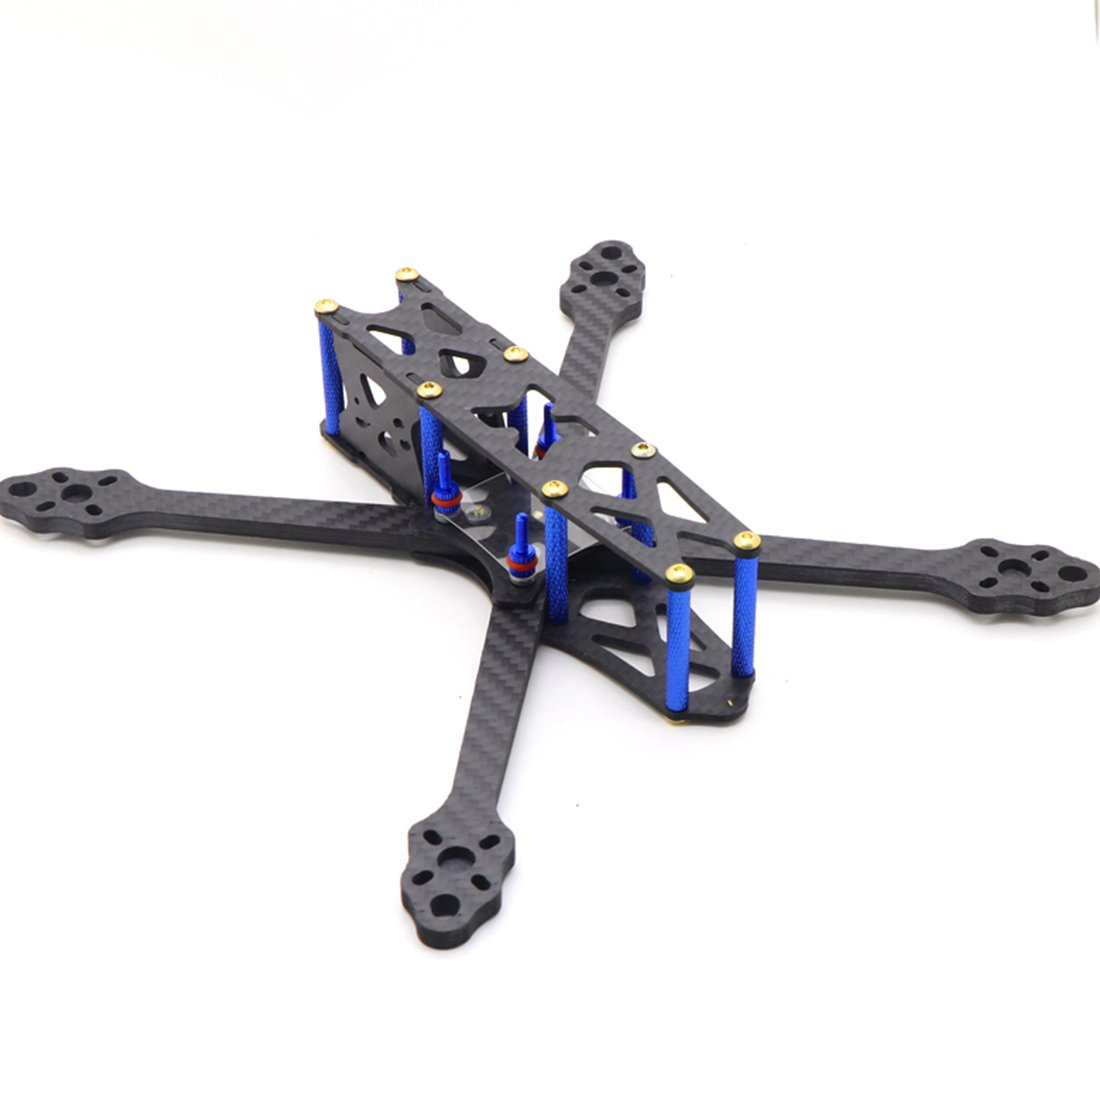 QWinOut 225mm Four-axis Carbon Fiber Frame X Type Airframe for DIY FPV Racing Done Quadcopter Kit